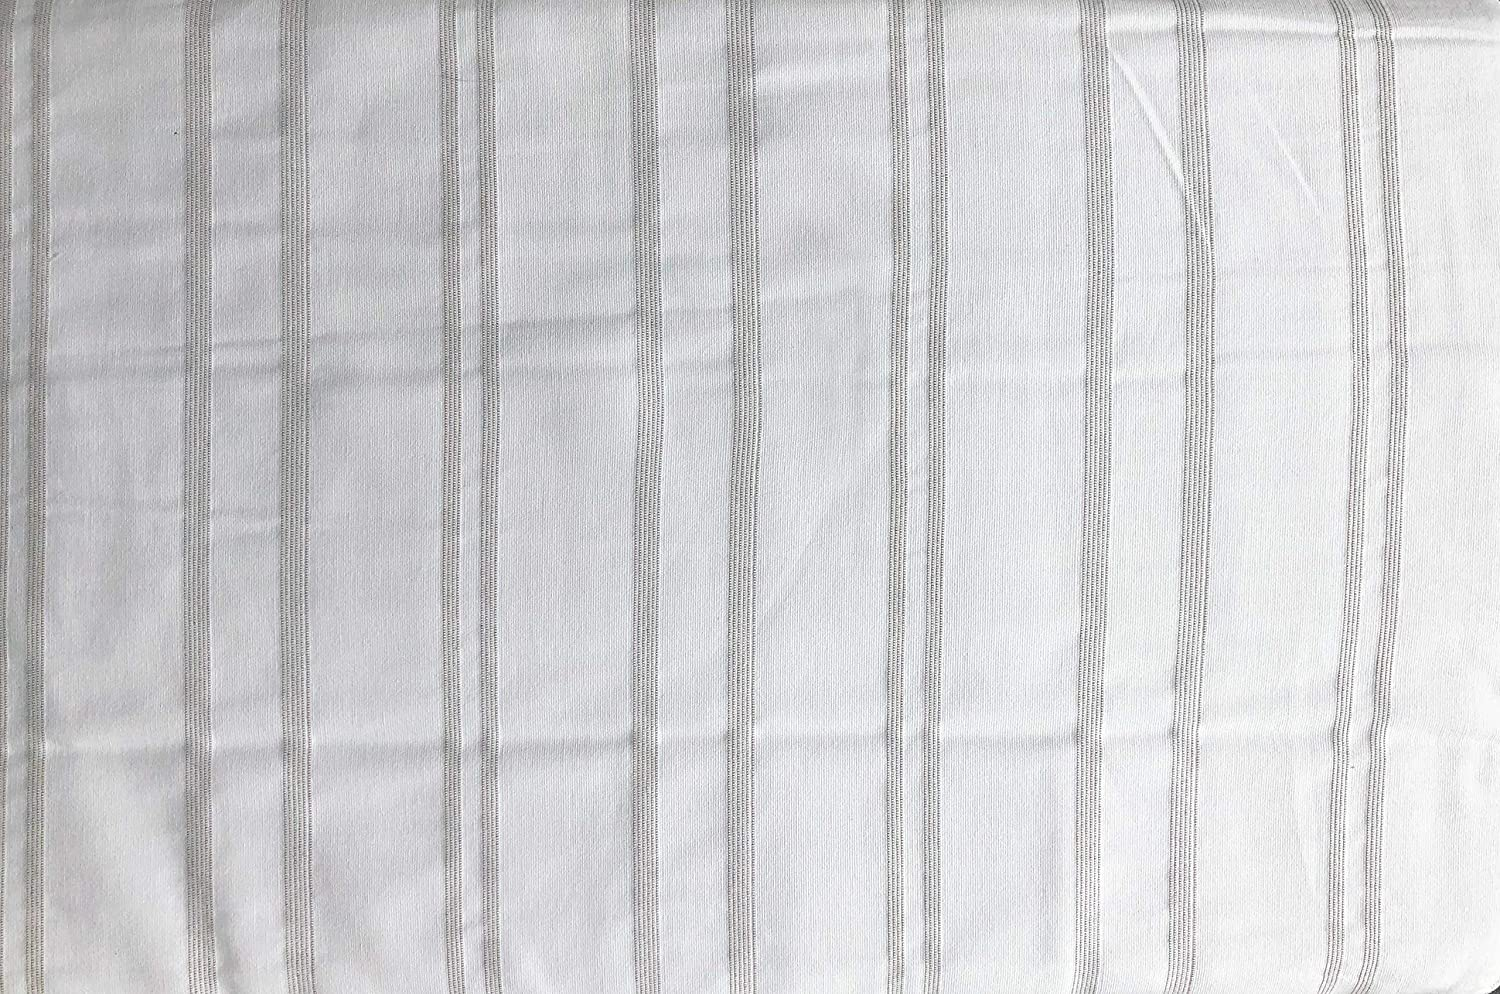 Inup Portugal 3pc Duvet Cover Set Thin Taupe Thread Stripes in Groups on White Comforter Quilt Cover 100% Cotton Luxury ( King)